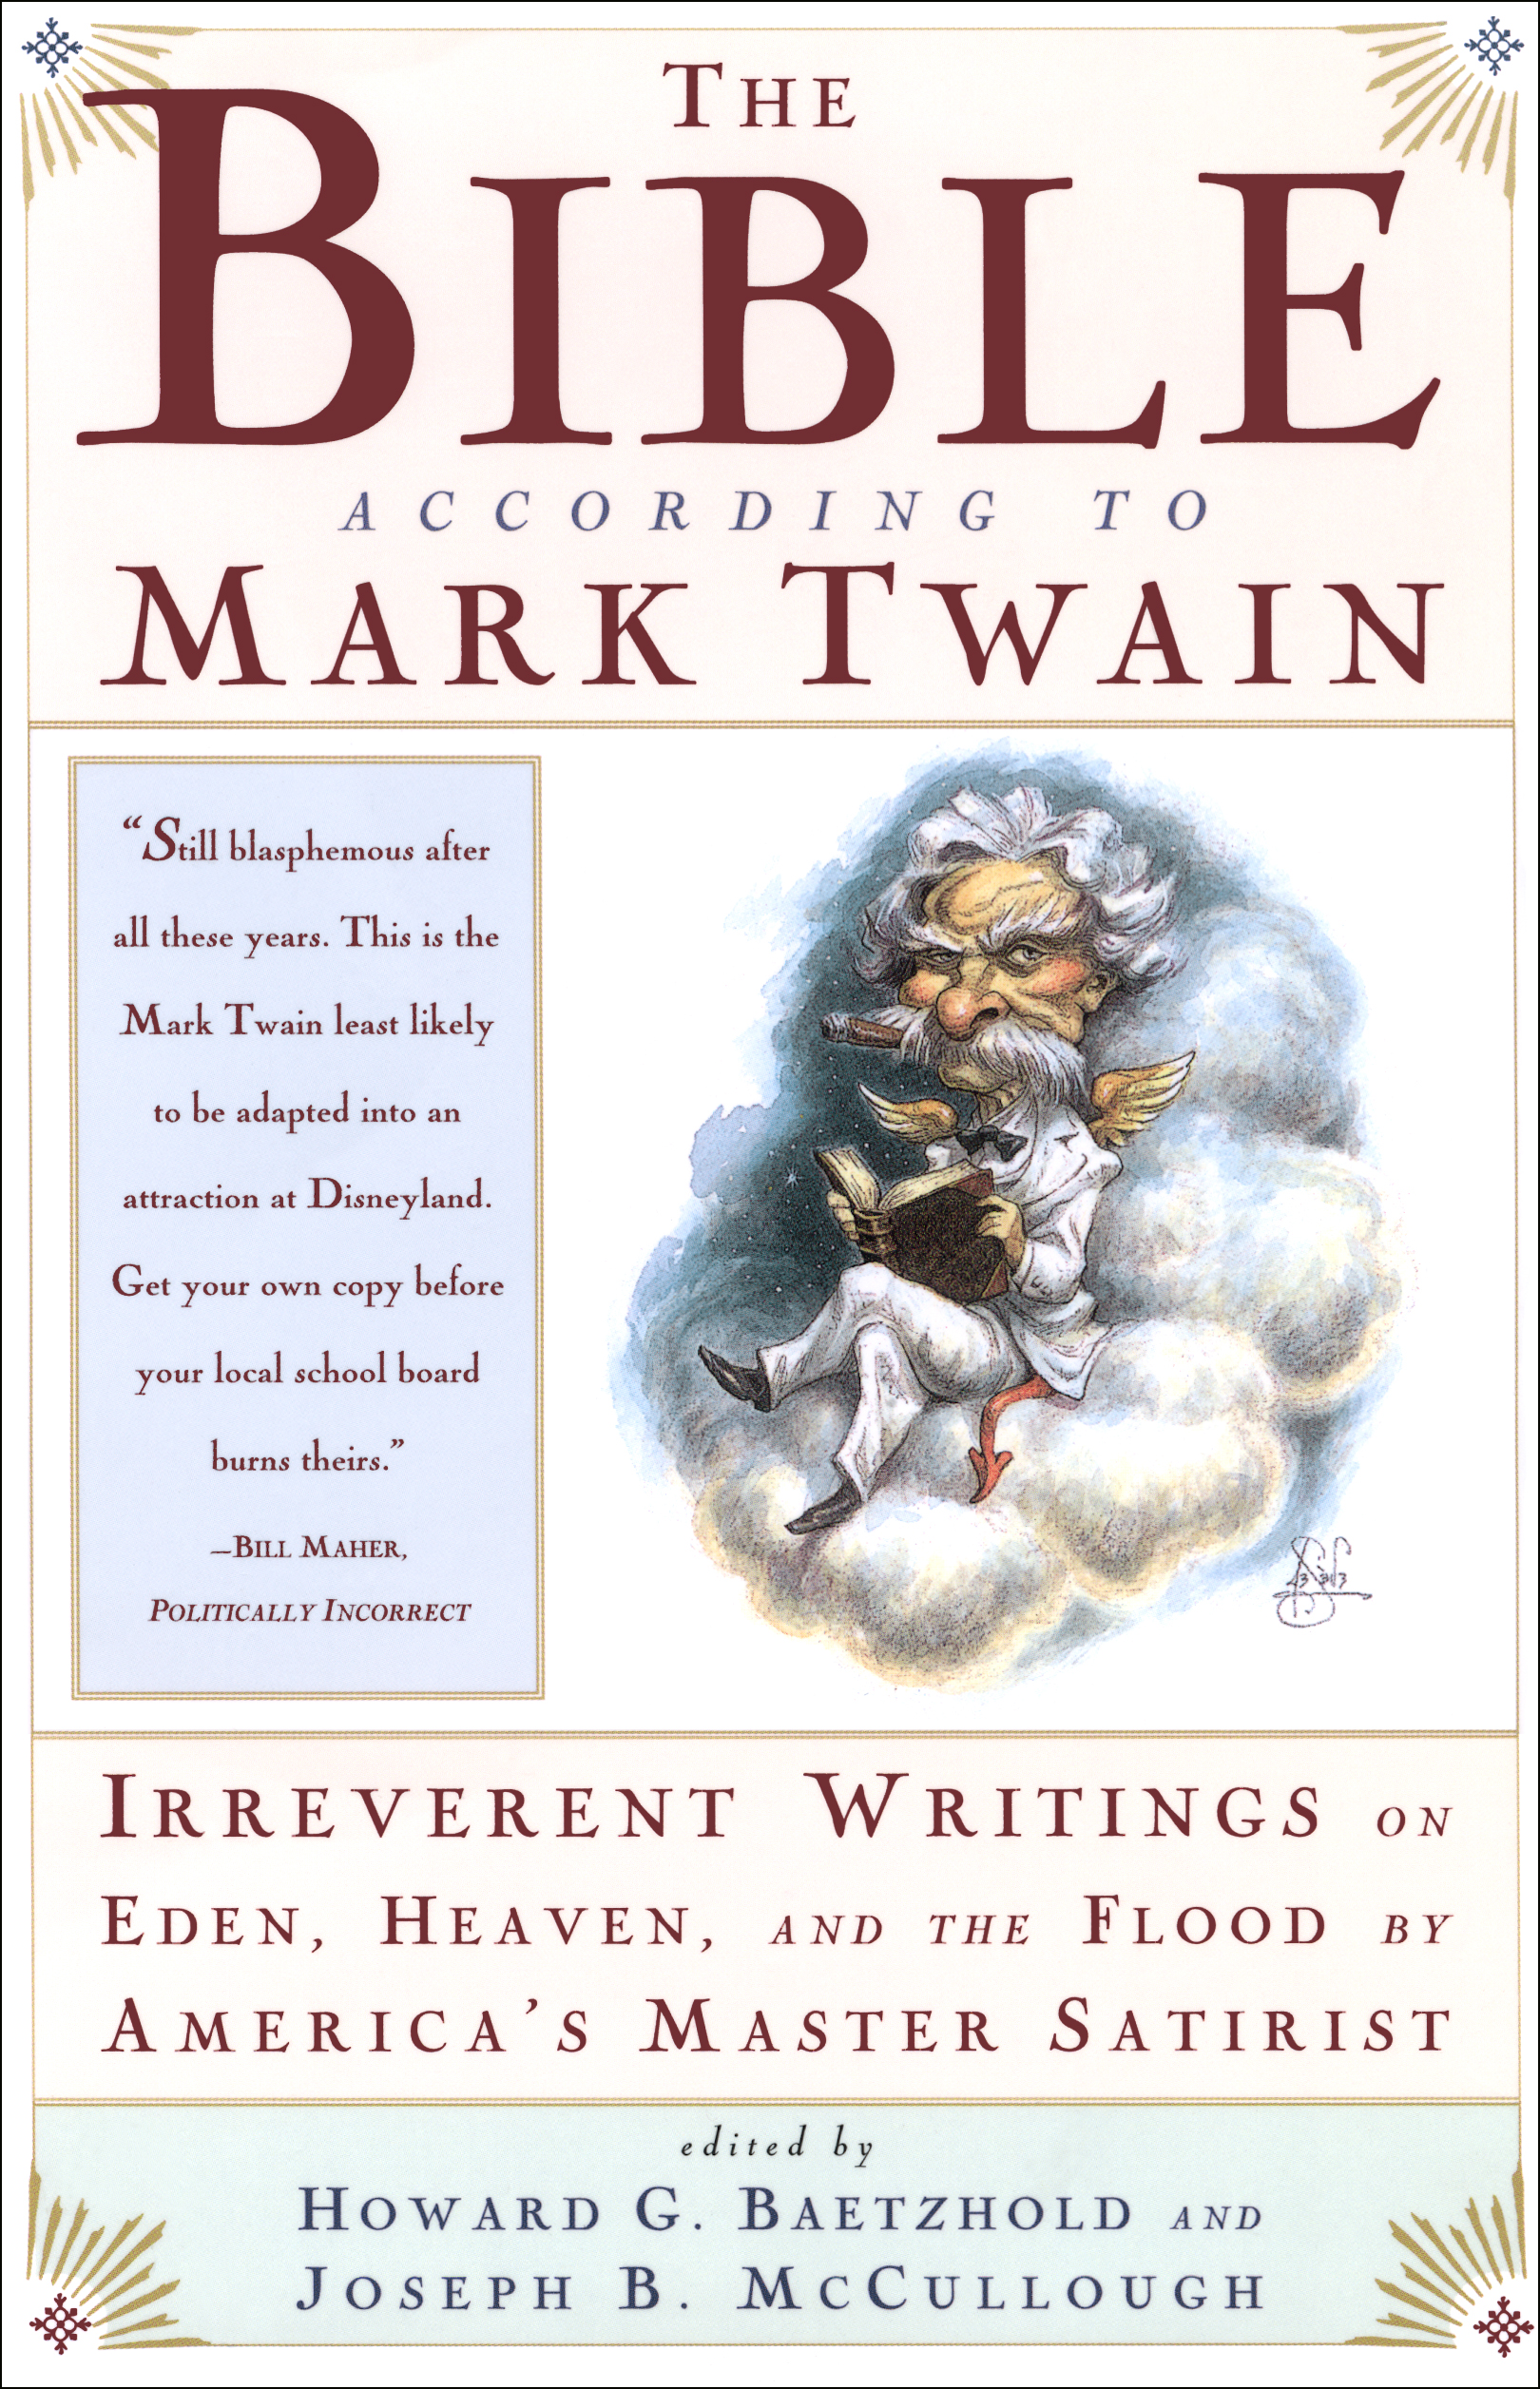 the bible according to mark twain book by joseph b mccullough  cvr9780684824390 9780684824390 hr the bible according to mark twain